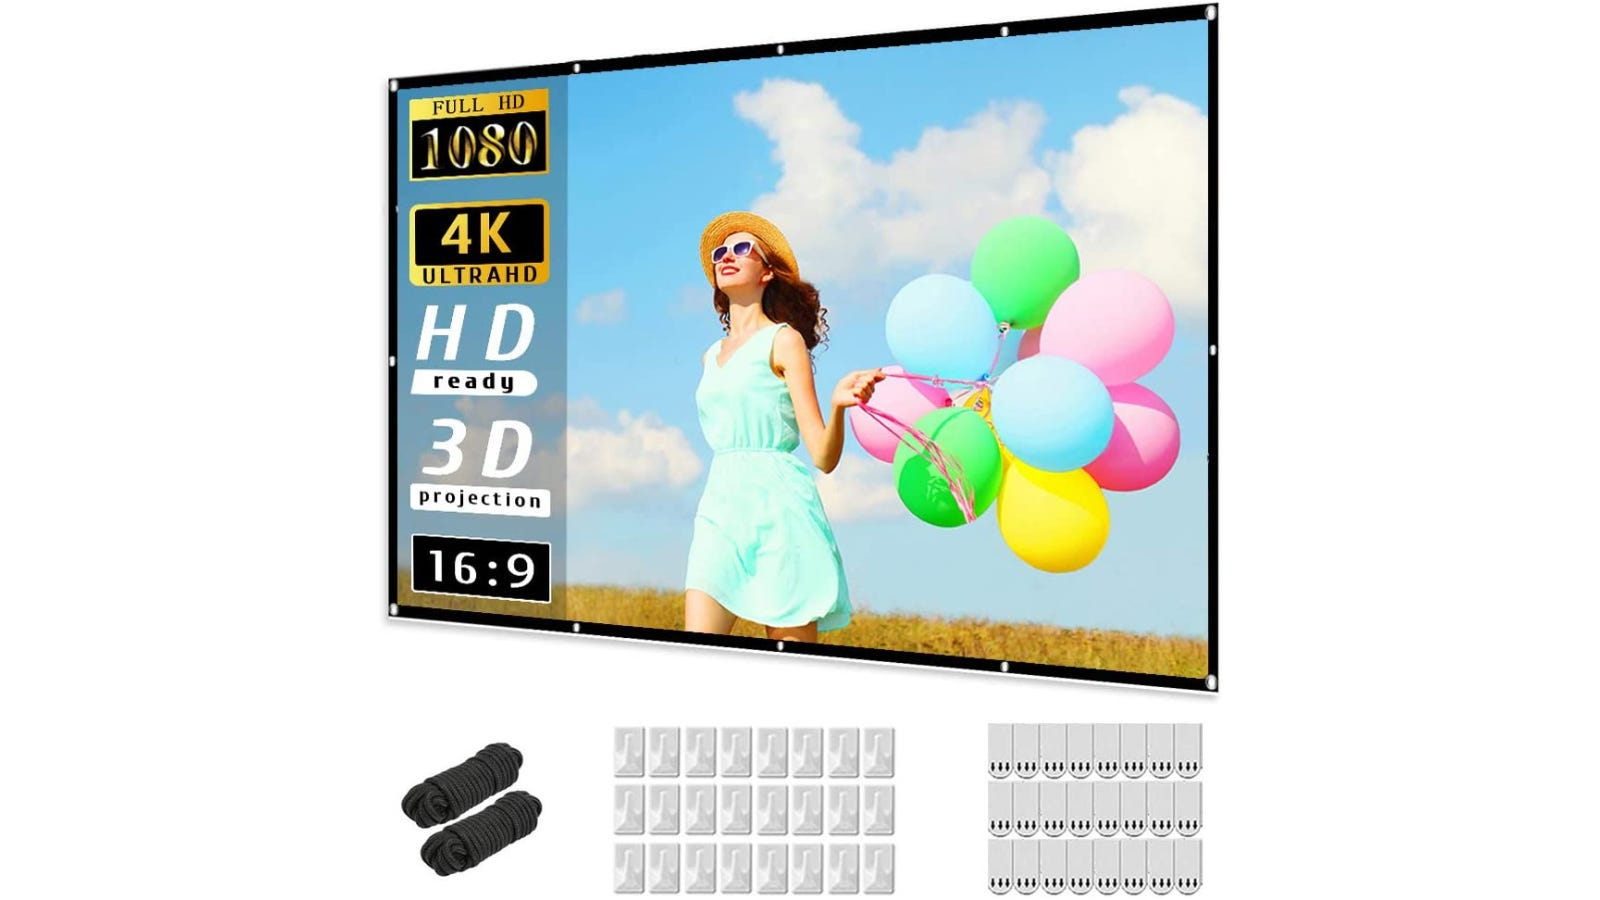 A projector screen with a woman on it holding numerous balloons.